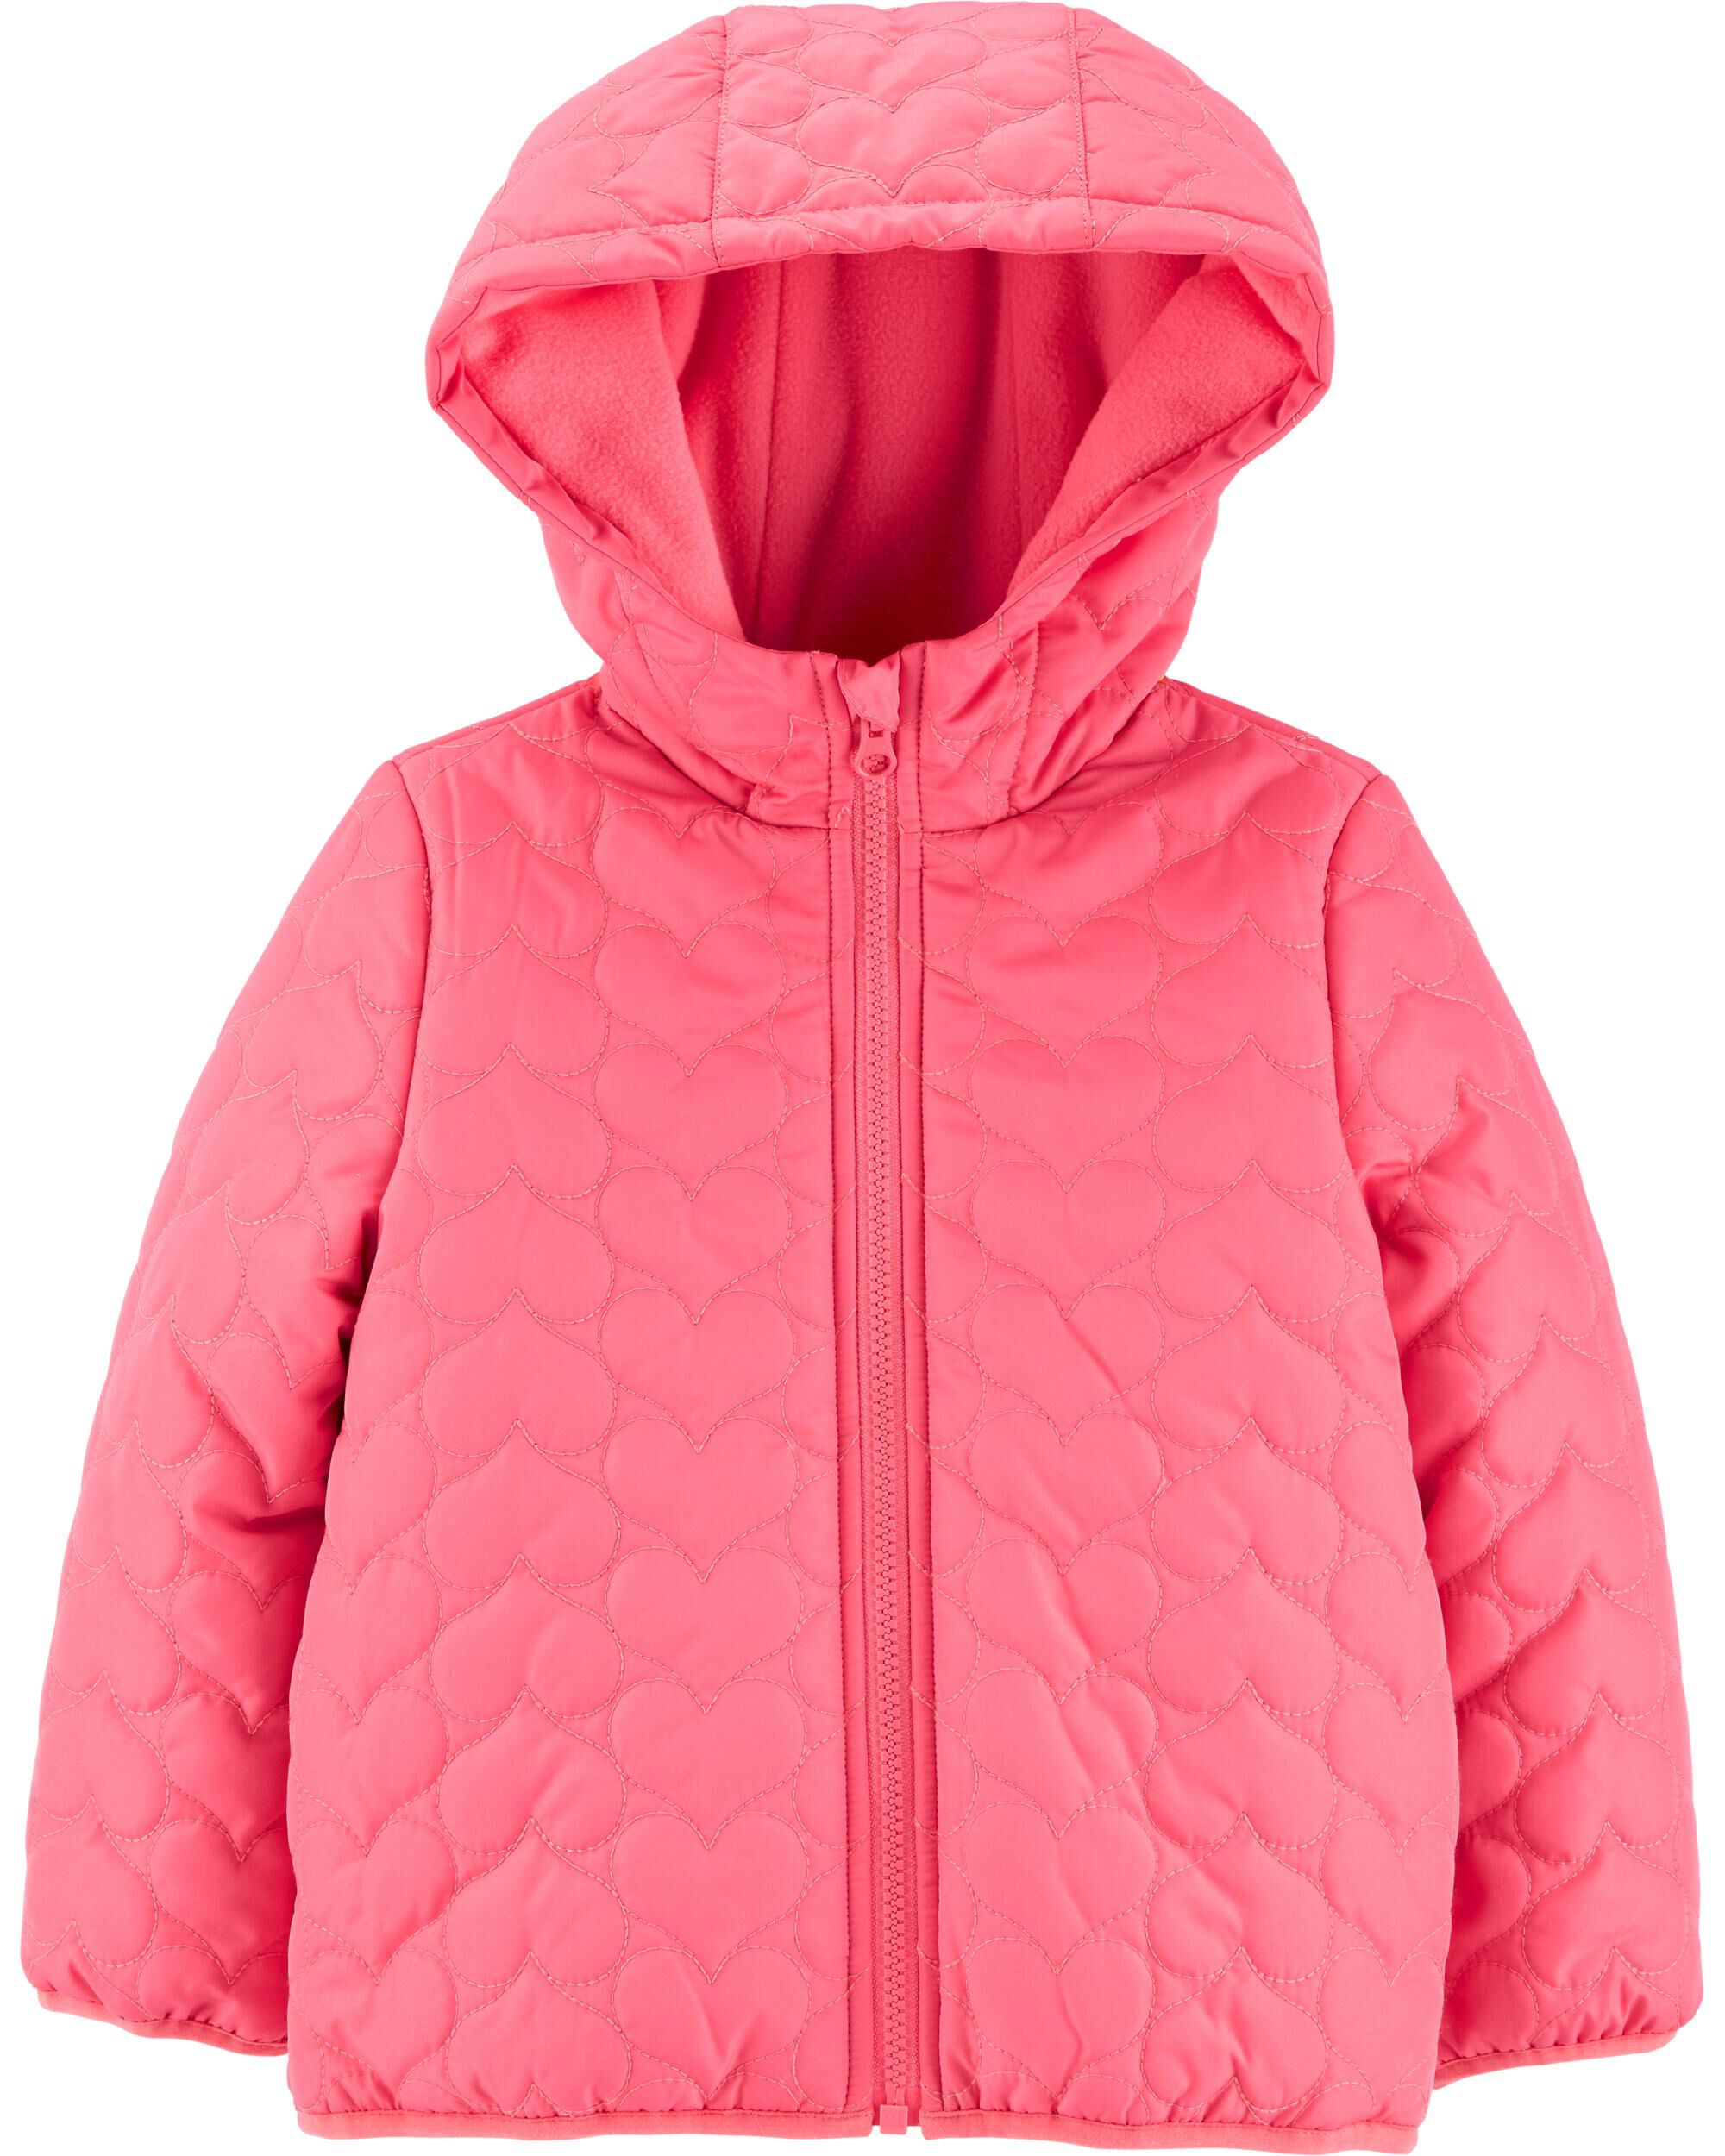 Baby Girl Jackets & Outerwear | Carter's | Free Shipping